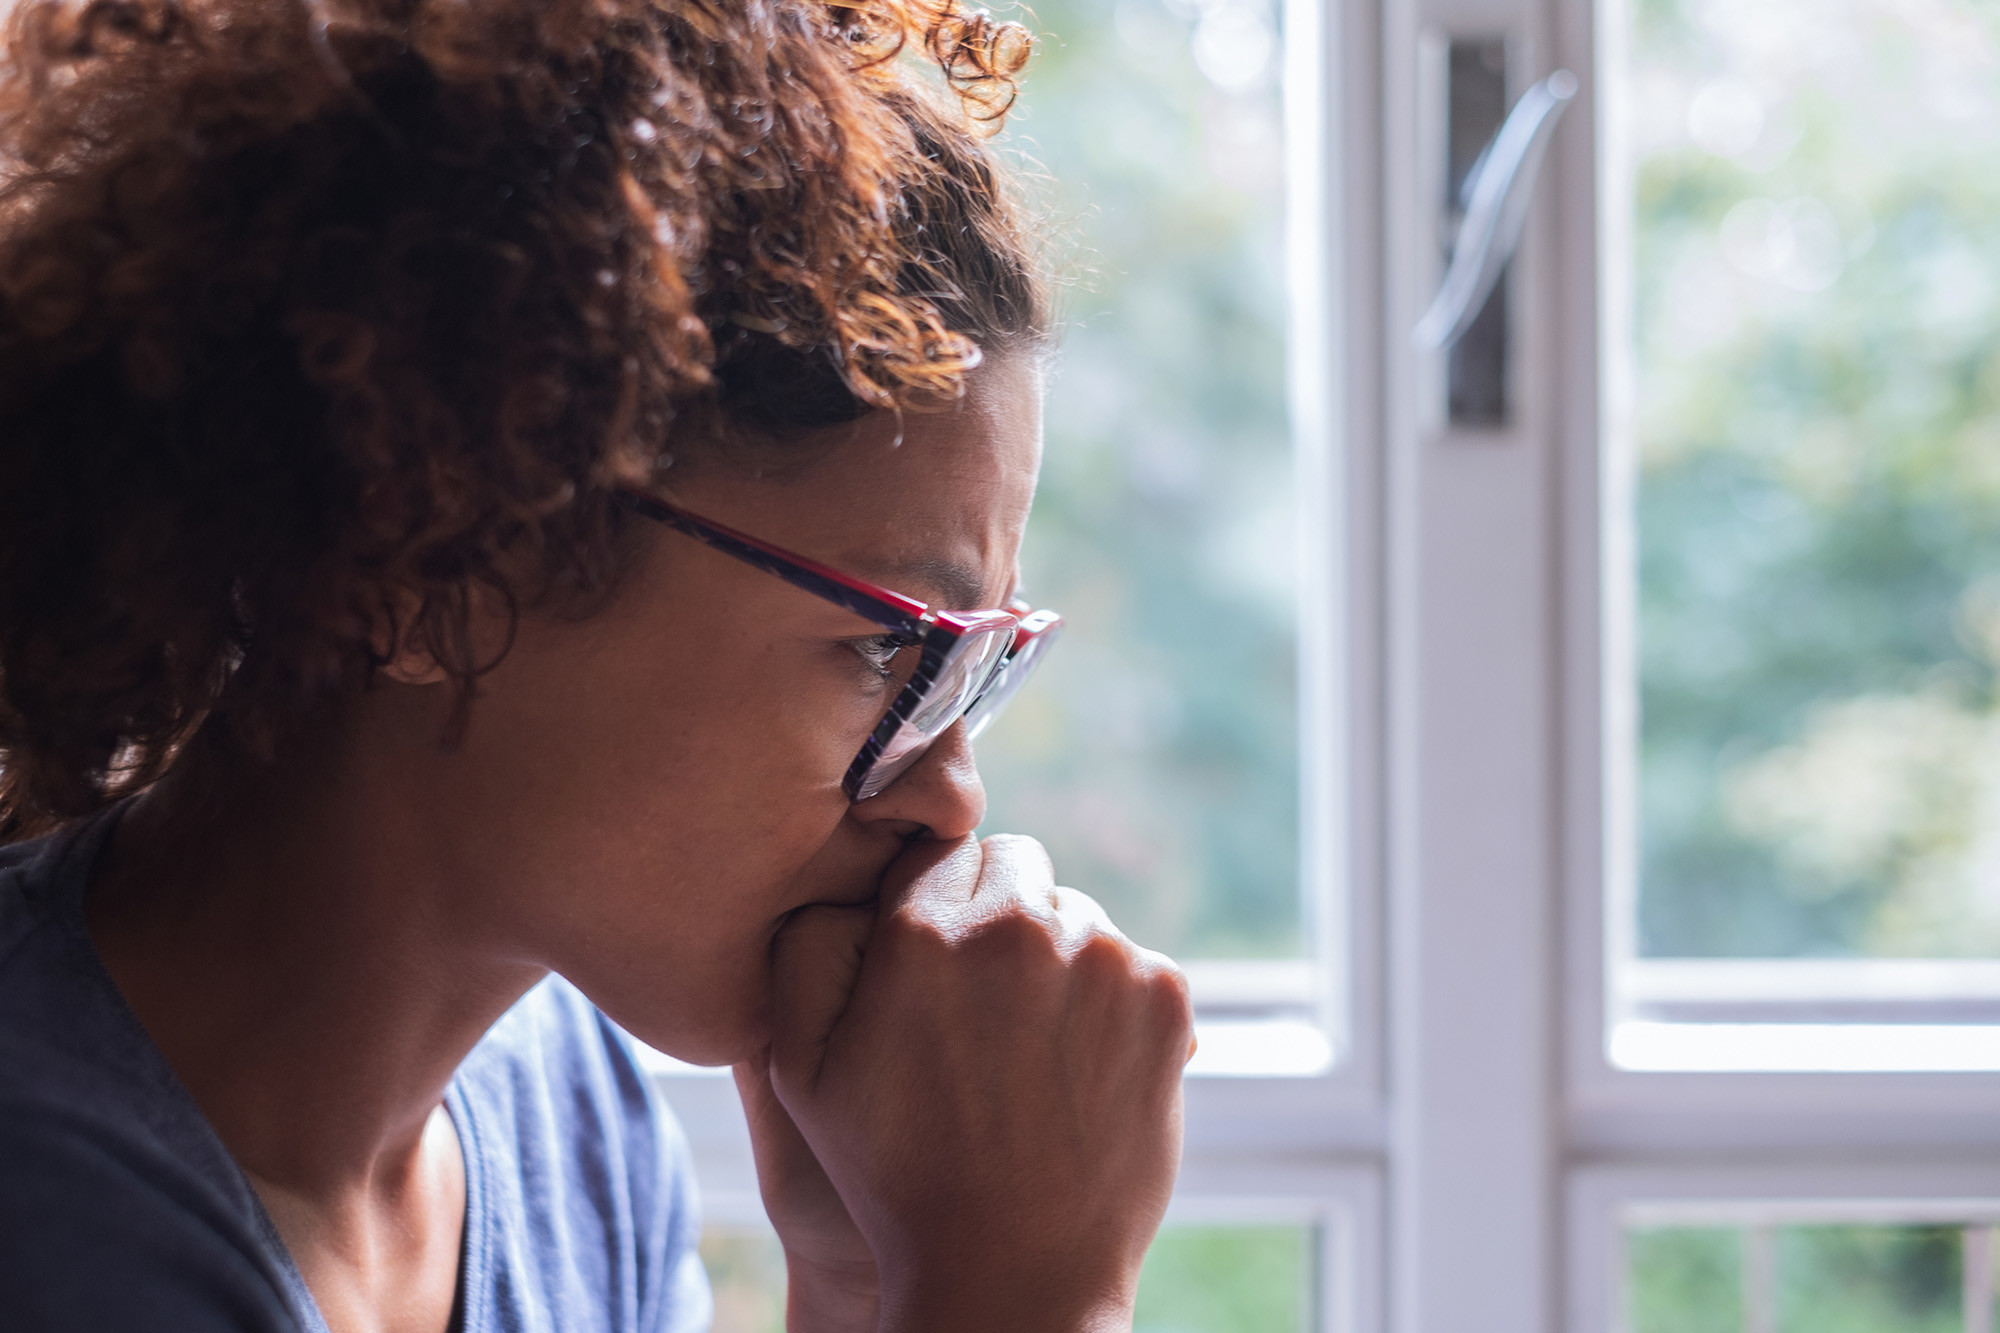 Mayo mindfulness: Know your triggers for stress